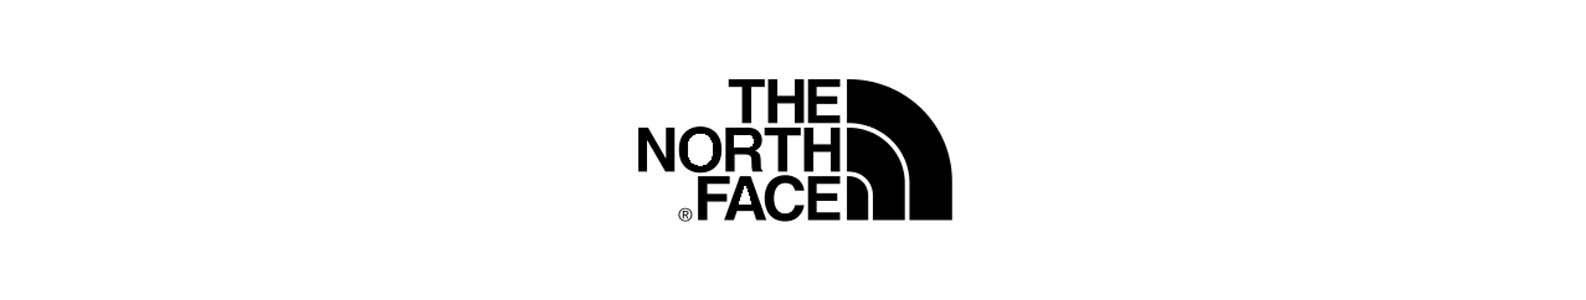 The North Face brand header image